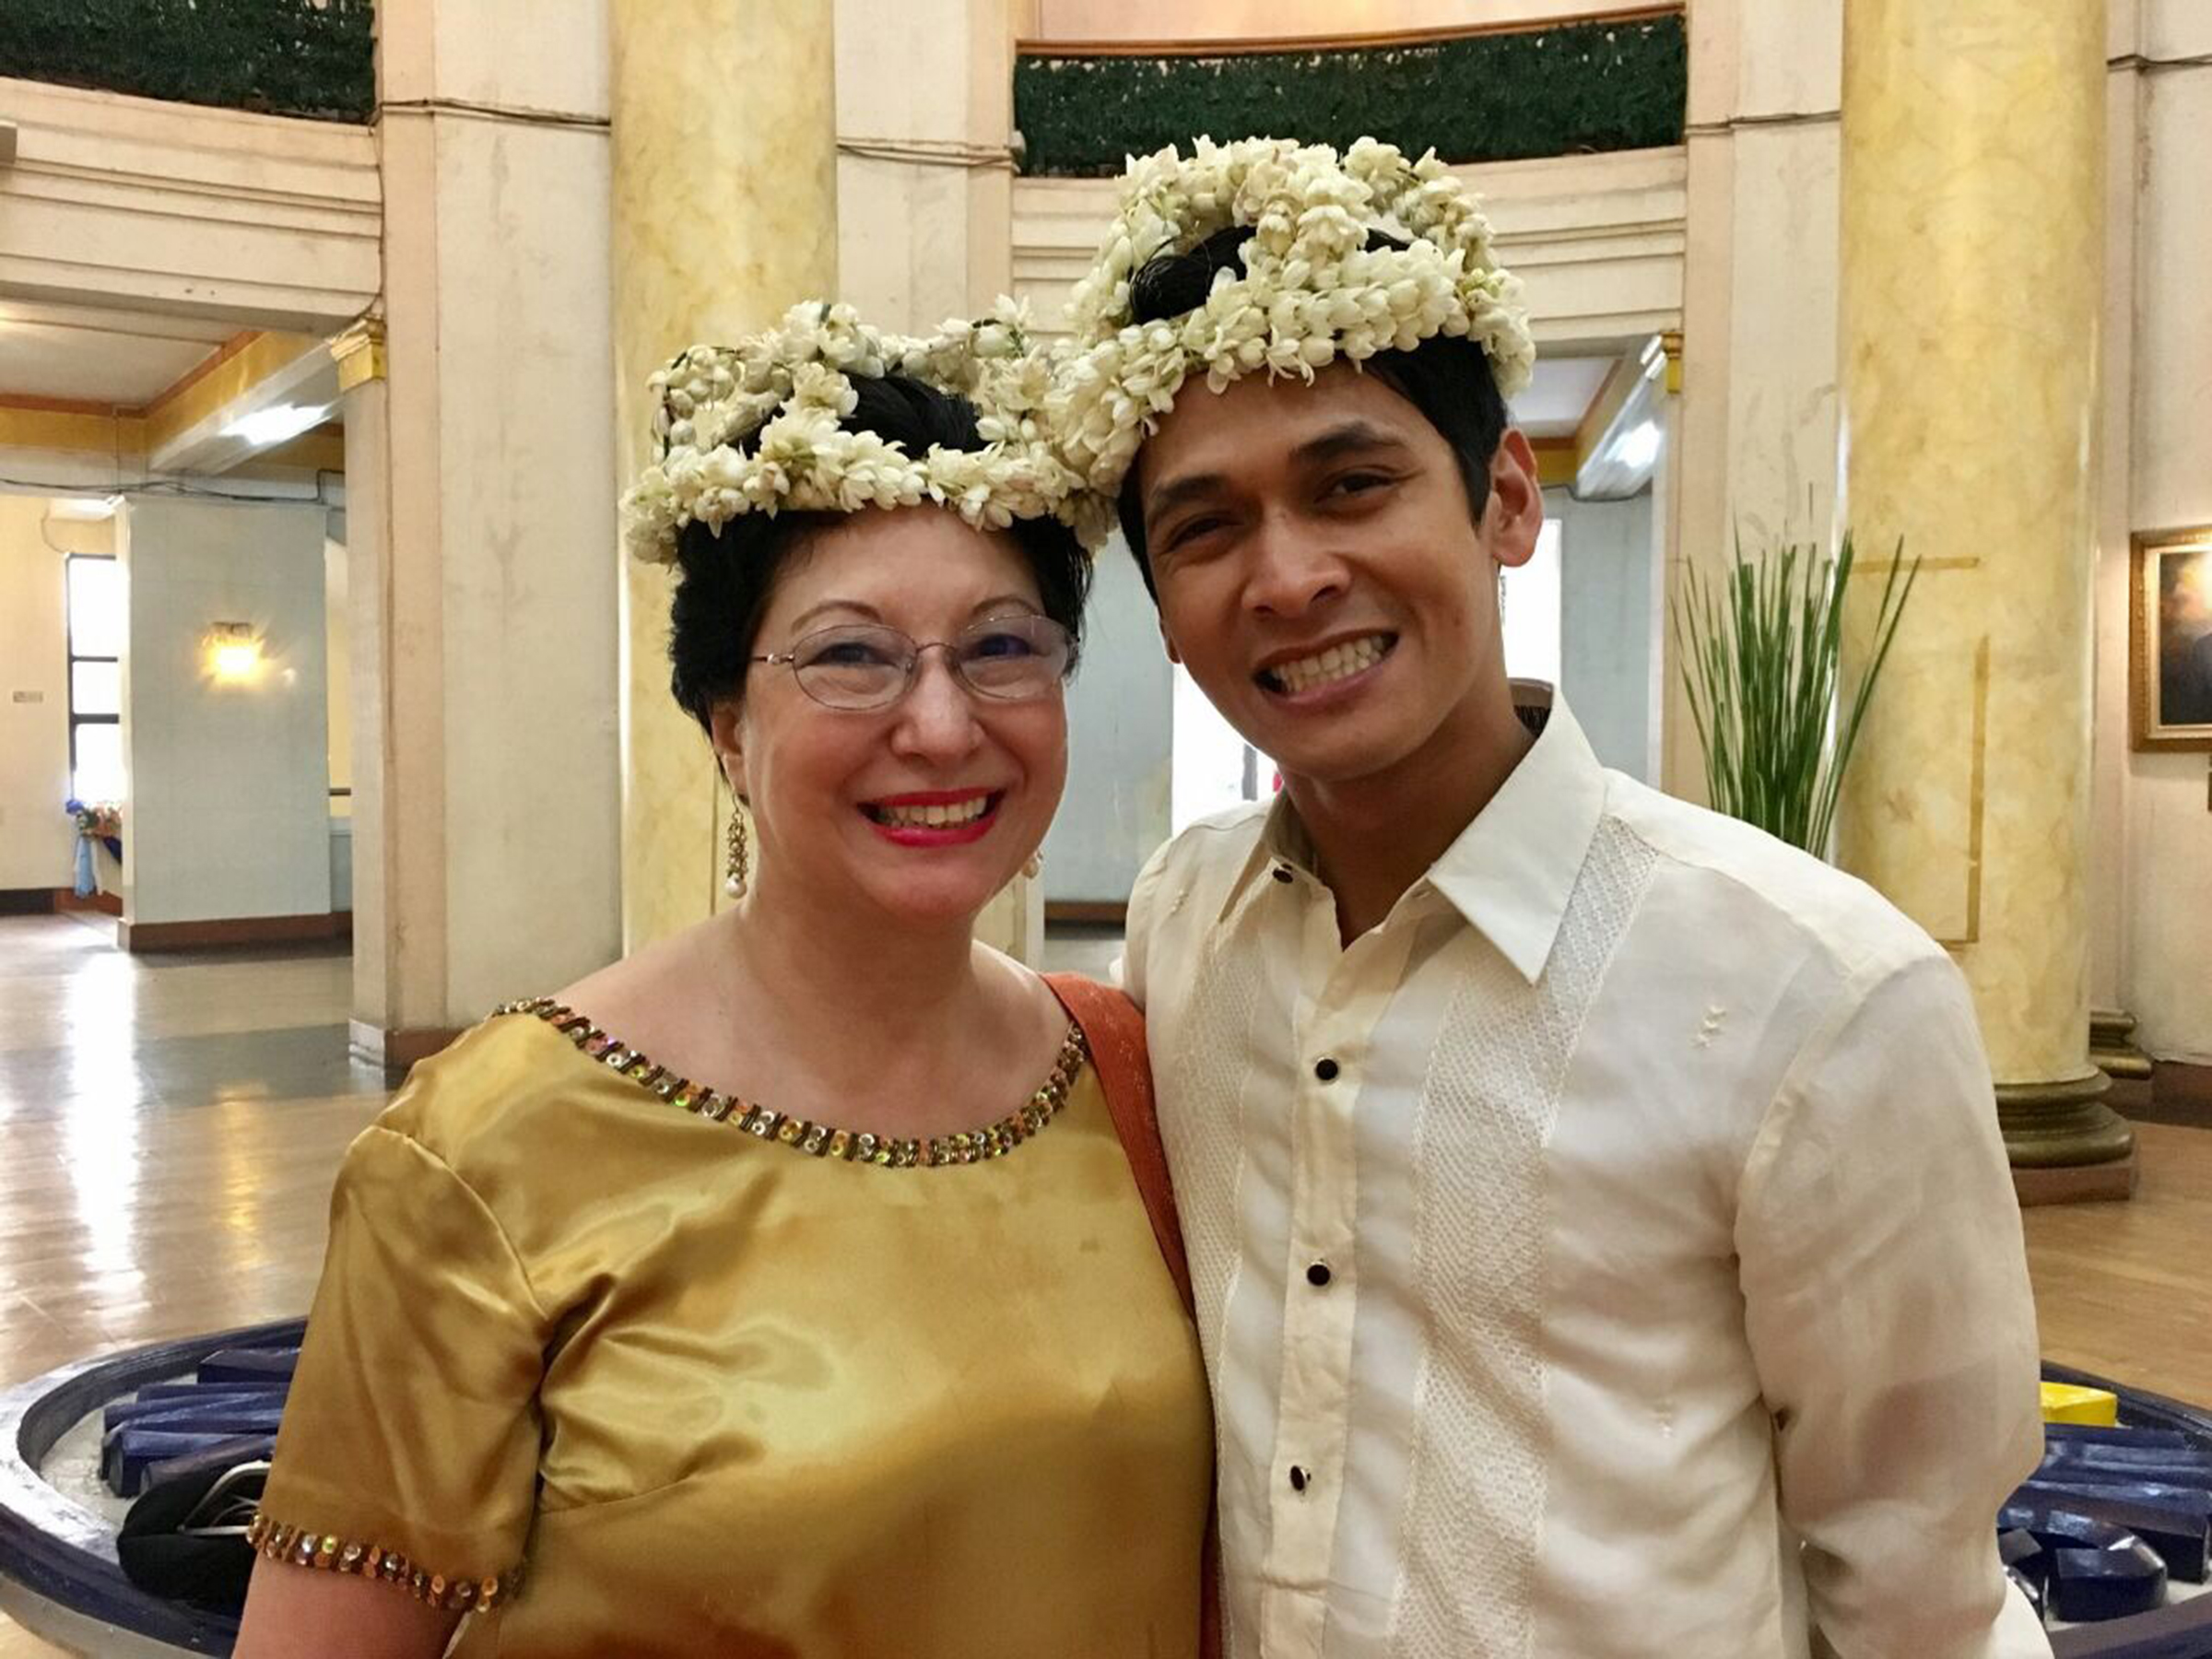 Also in attendance was Sylvia Lichauco, a prominent resident of Manila and currently the director of Ballet Manila's Project Ballet Futures scholarship program. Both are wearing sampaguita crowns accorded to the night's guests.